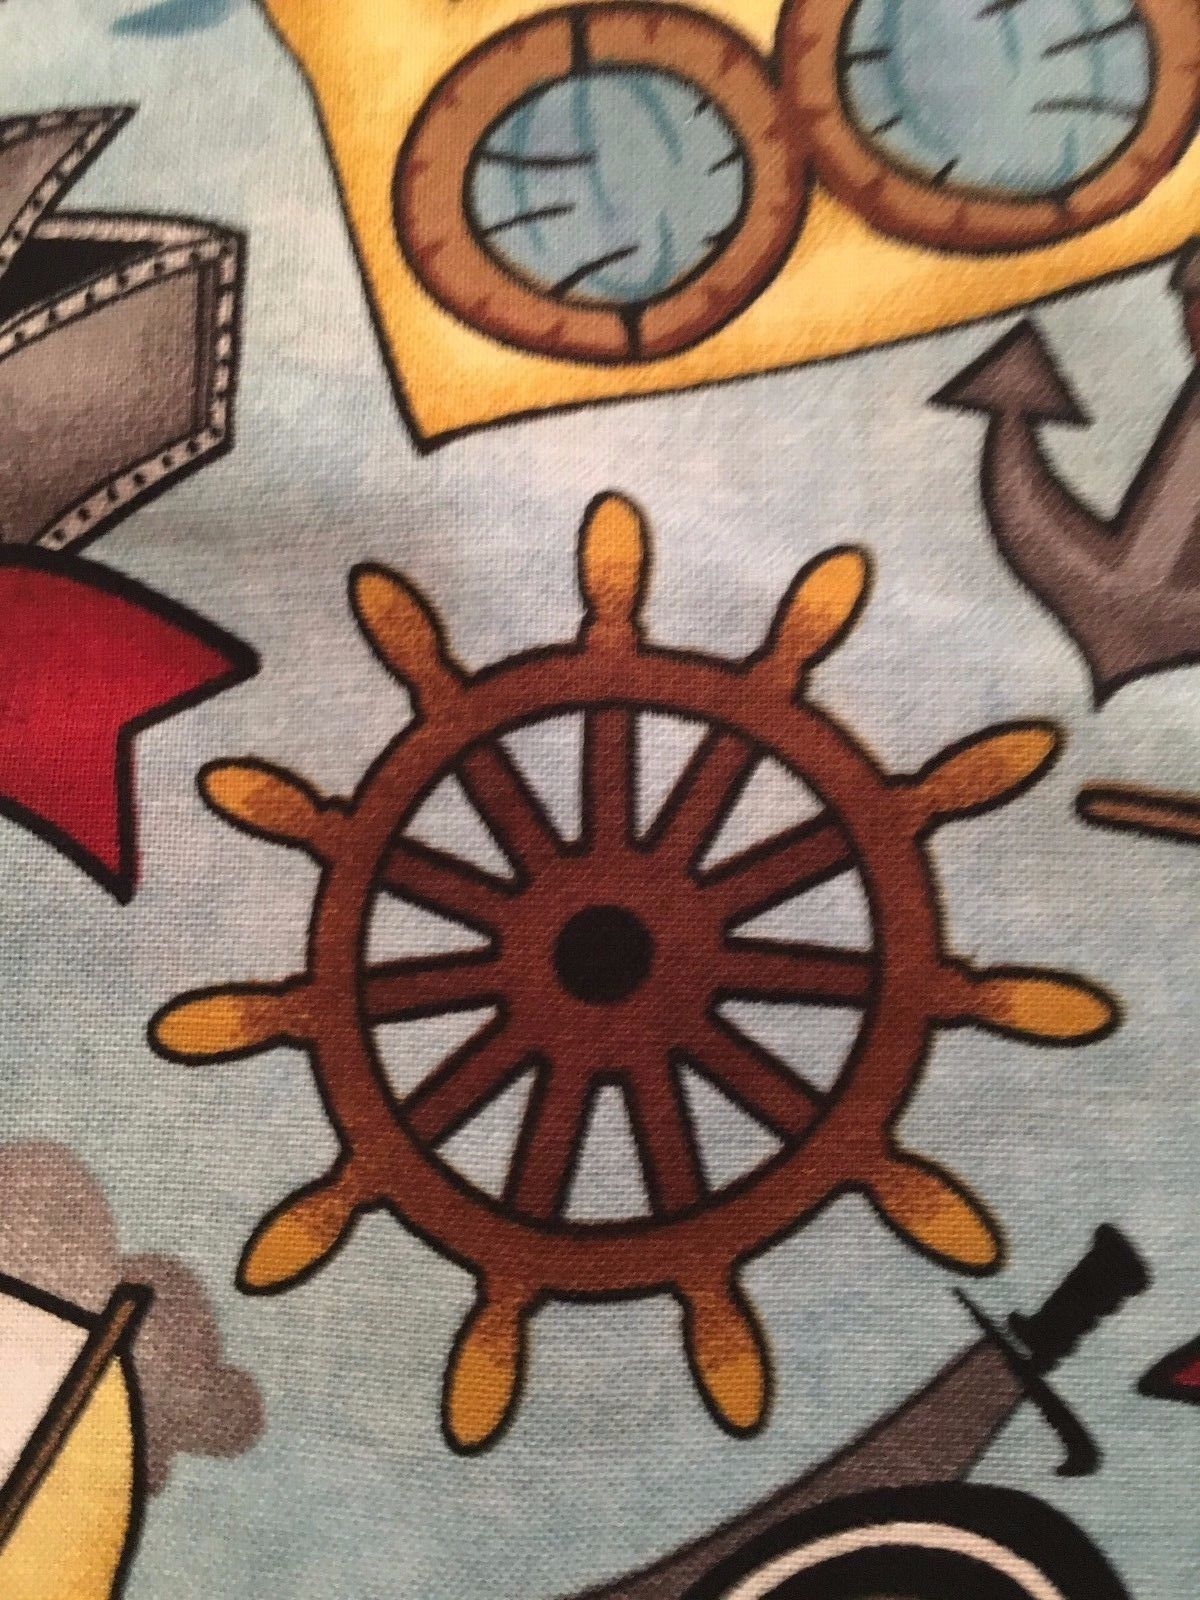 Disney Jake /& the Neverland Pirates Treasure A Hoy Cotton Fabric by the 1//2 Yard